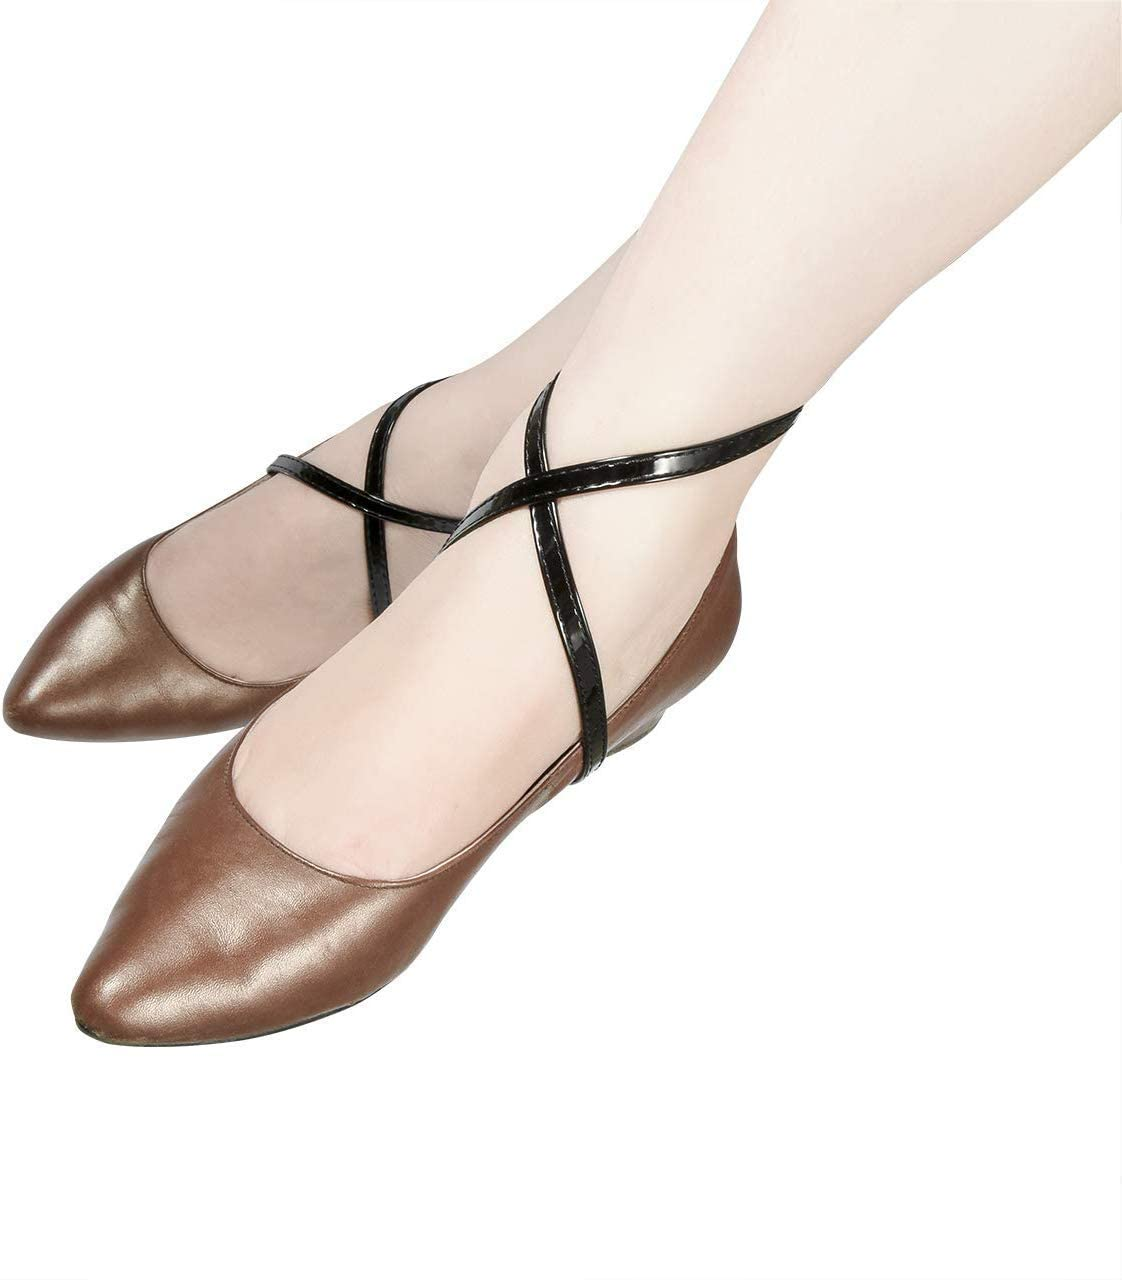 Beautyflier Women's Detachable Anti-Slip Anti-Loose Shoe Straps for High Heeled Shoes 2 Pairs